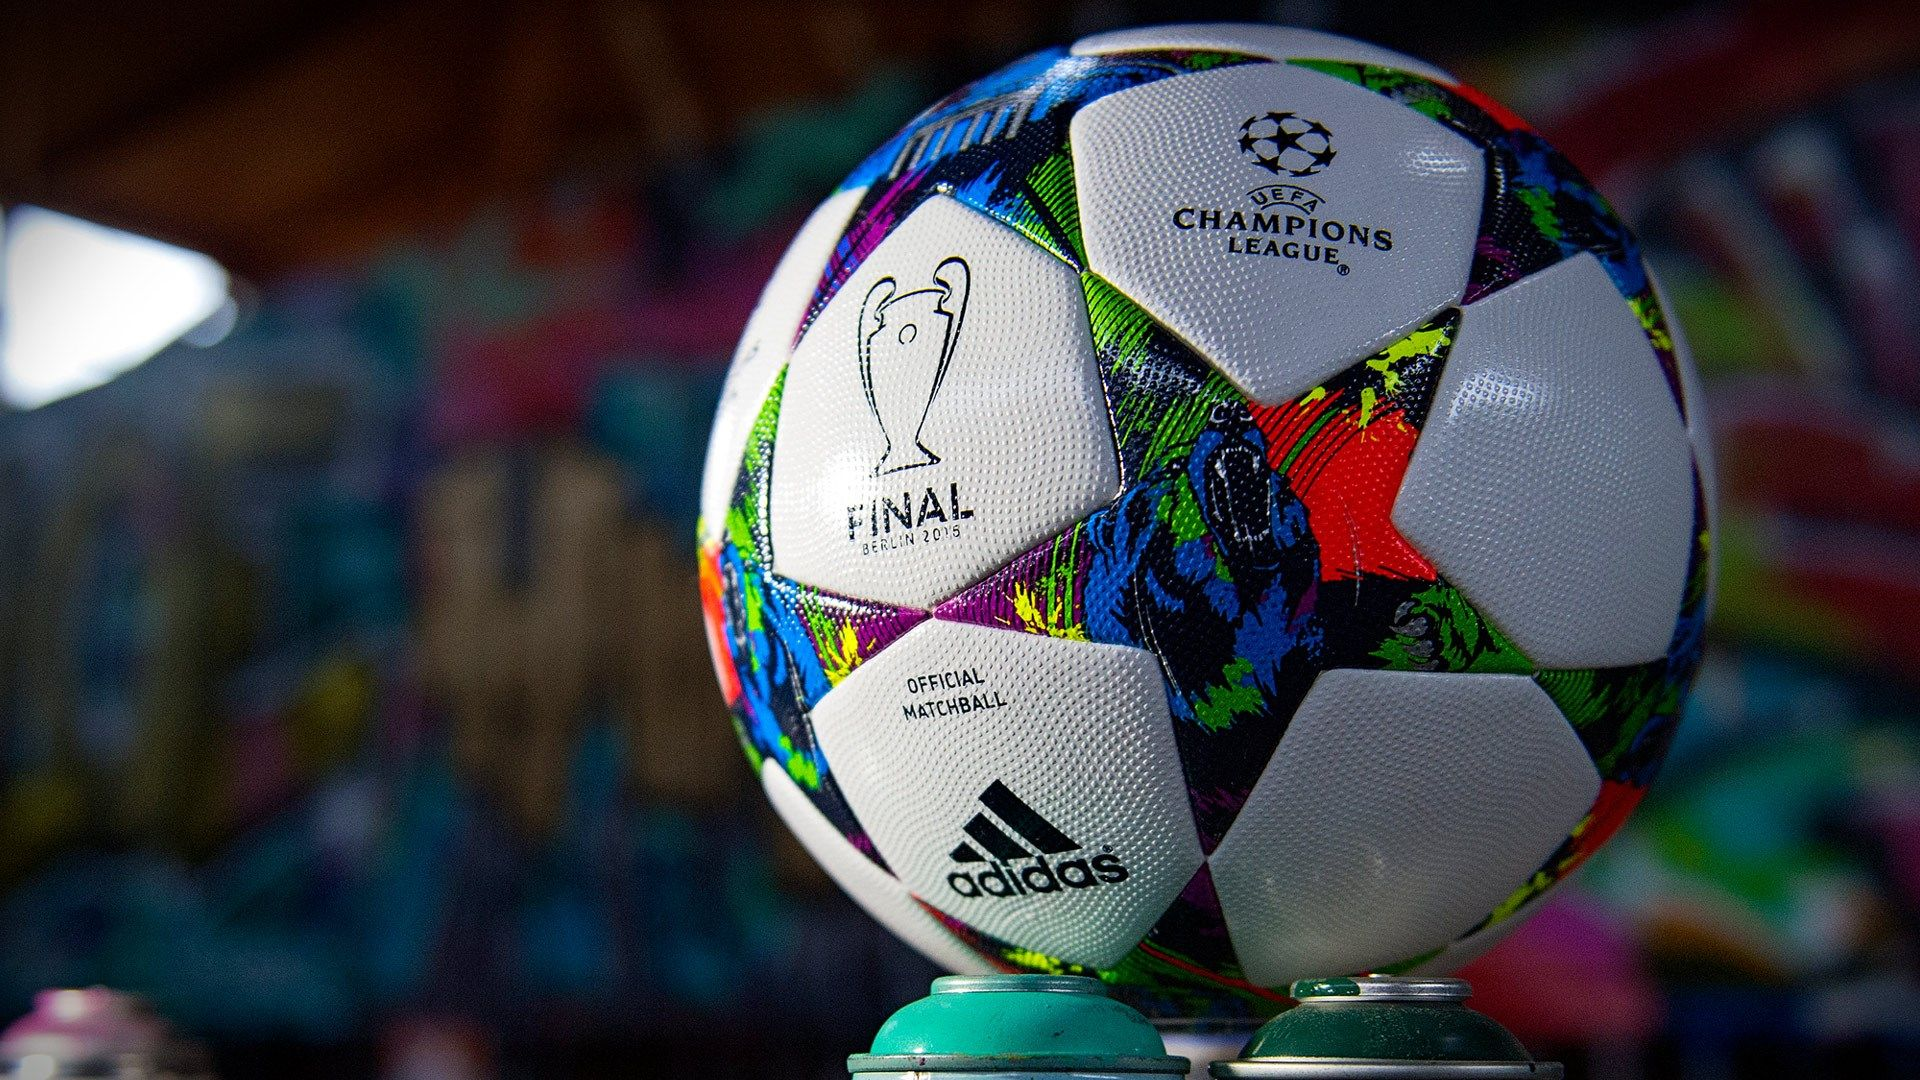 abb7c54692 hd champions league wallpaper